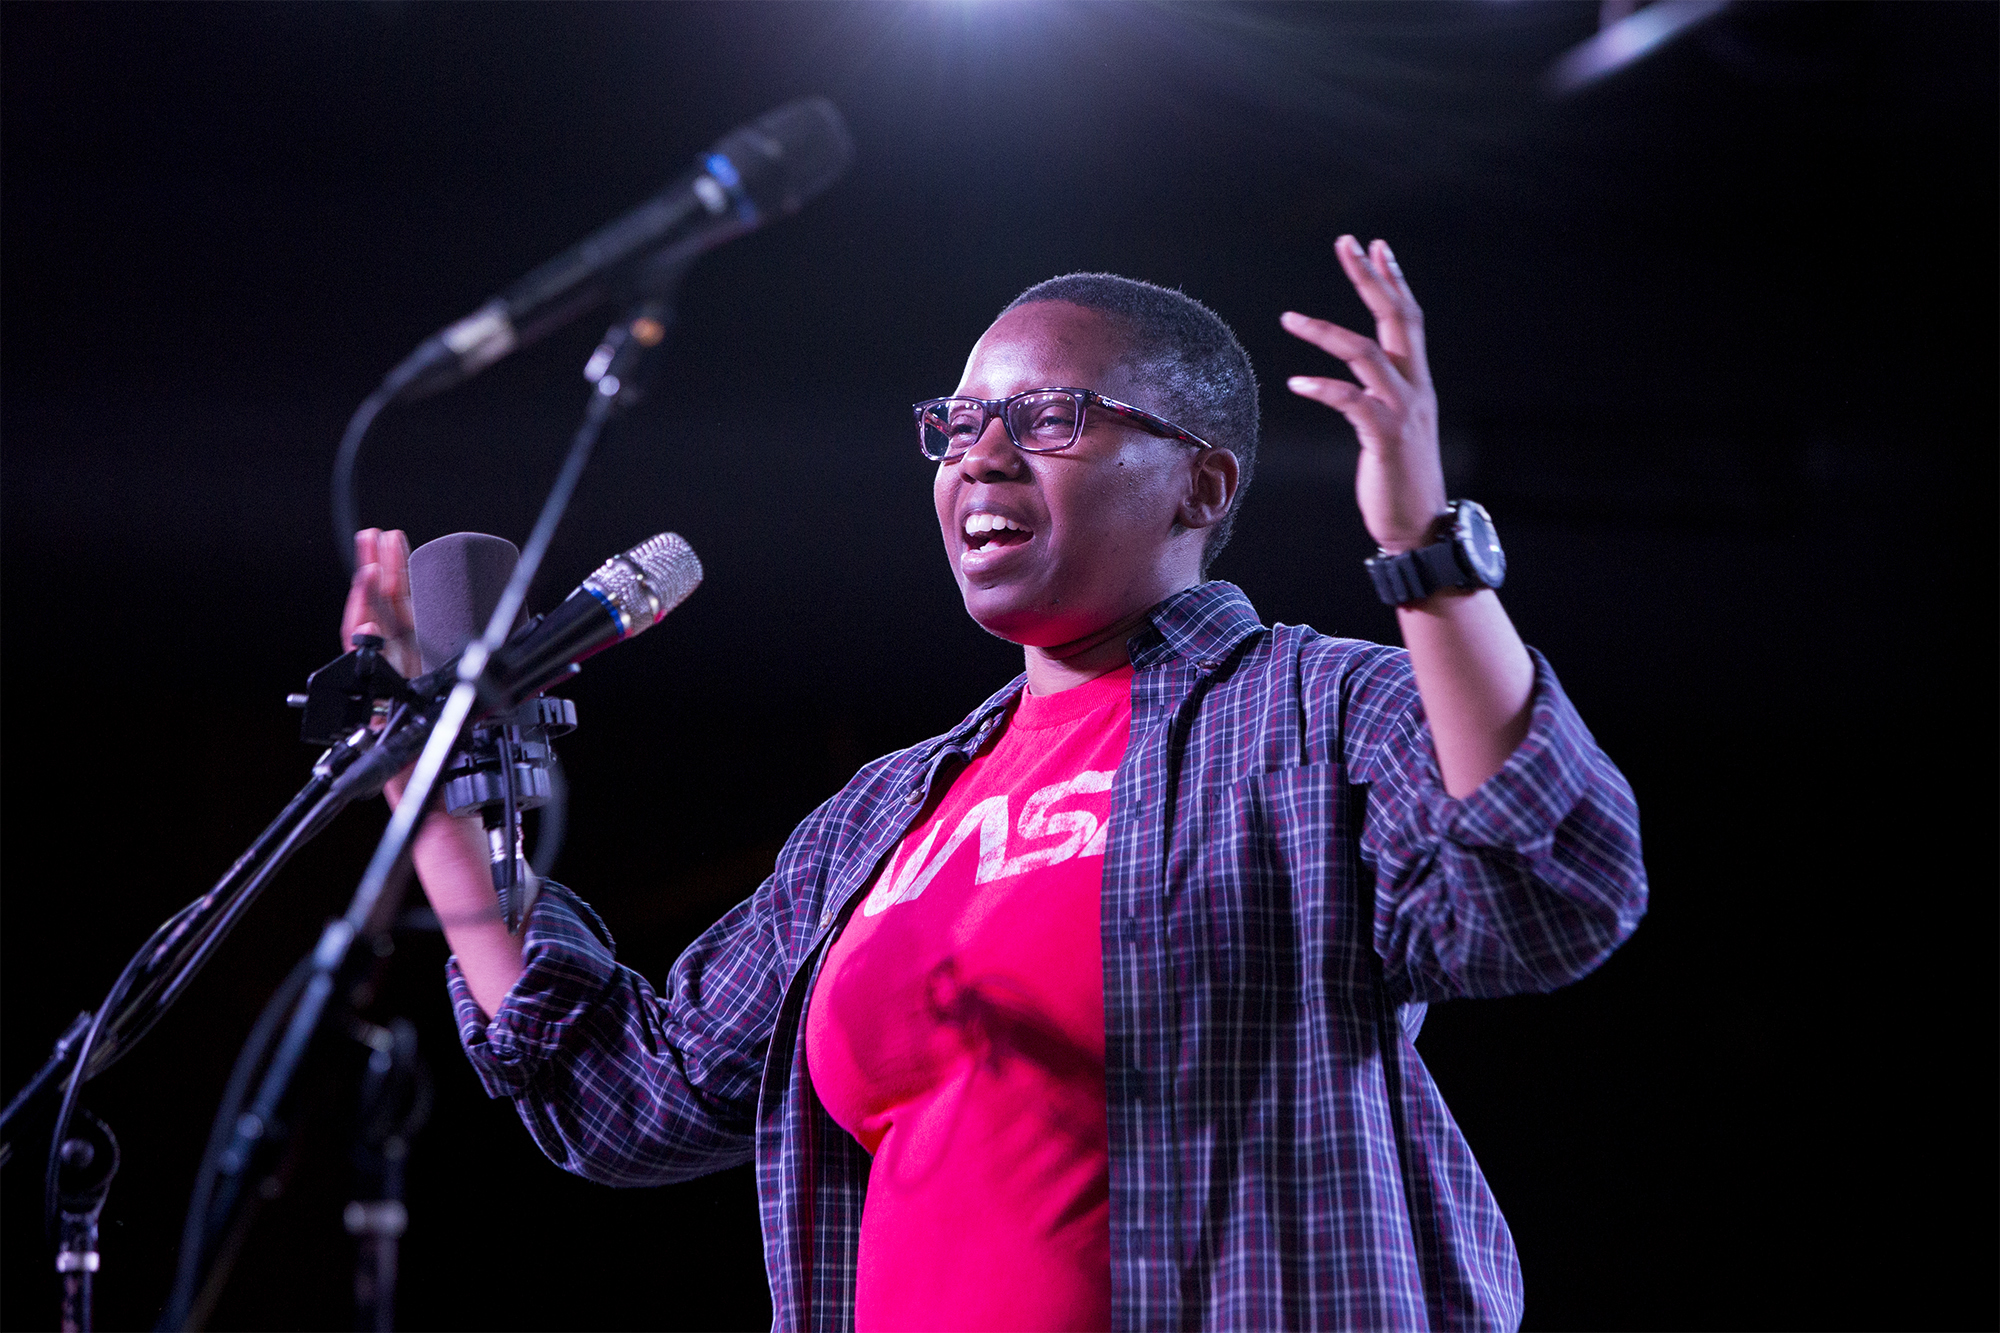 LaShana Lewis shares her story at the Ready Room in St. Louis. Photo by David Kovaluk